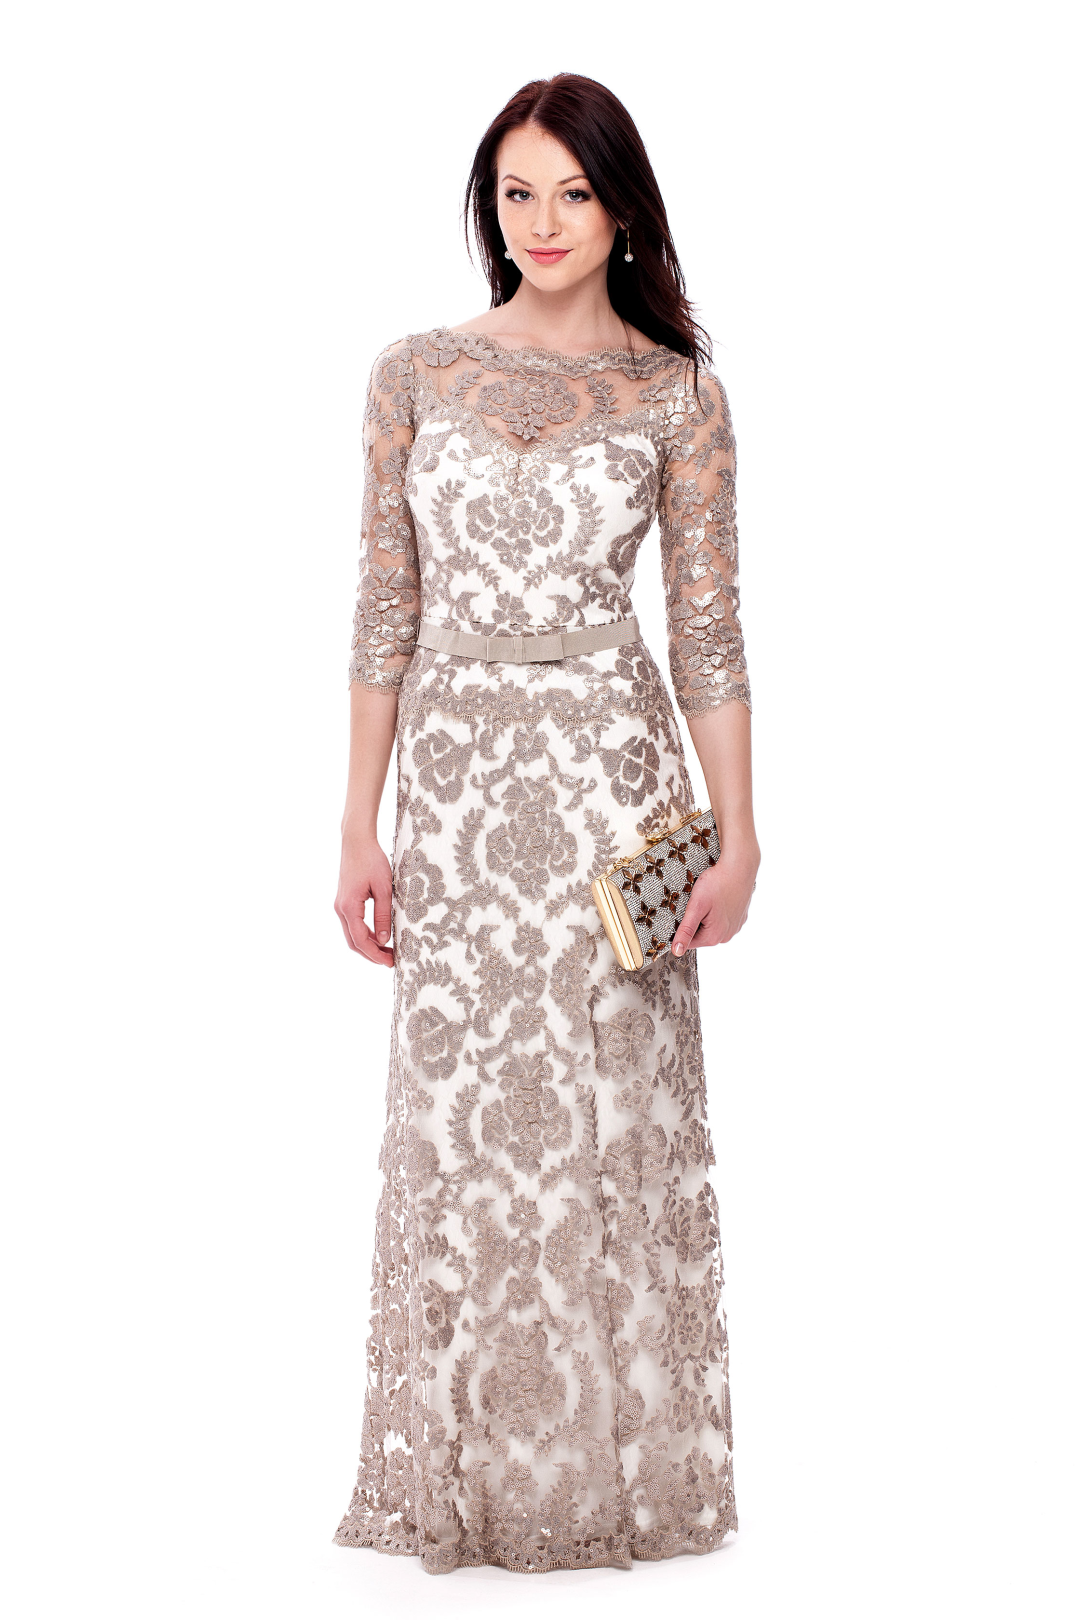 8adaa8bb7f1a1 RENT BOUTIQUE / Long Sand Embroidered Dress